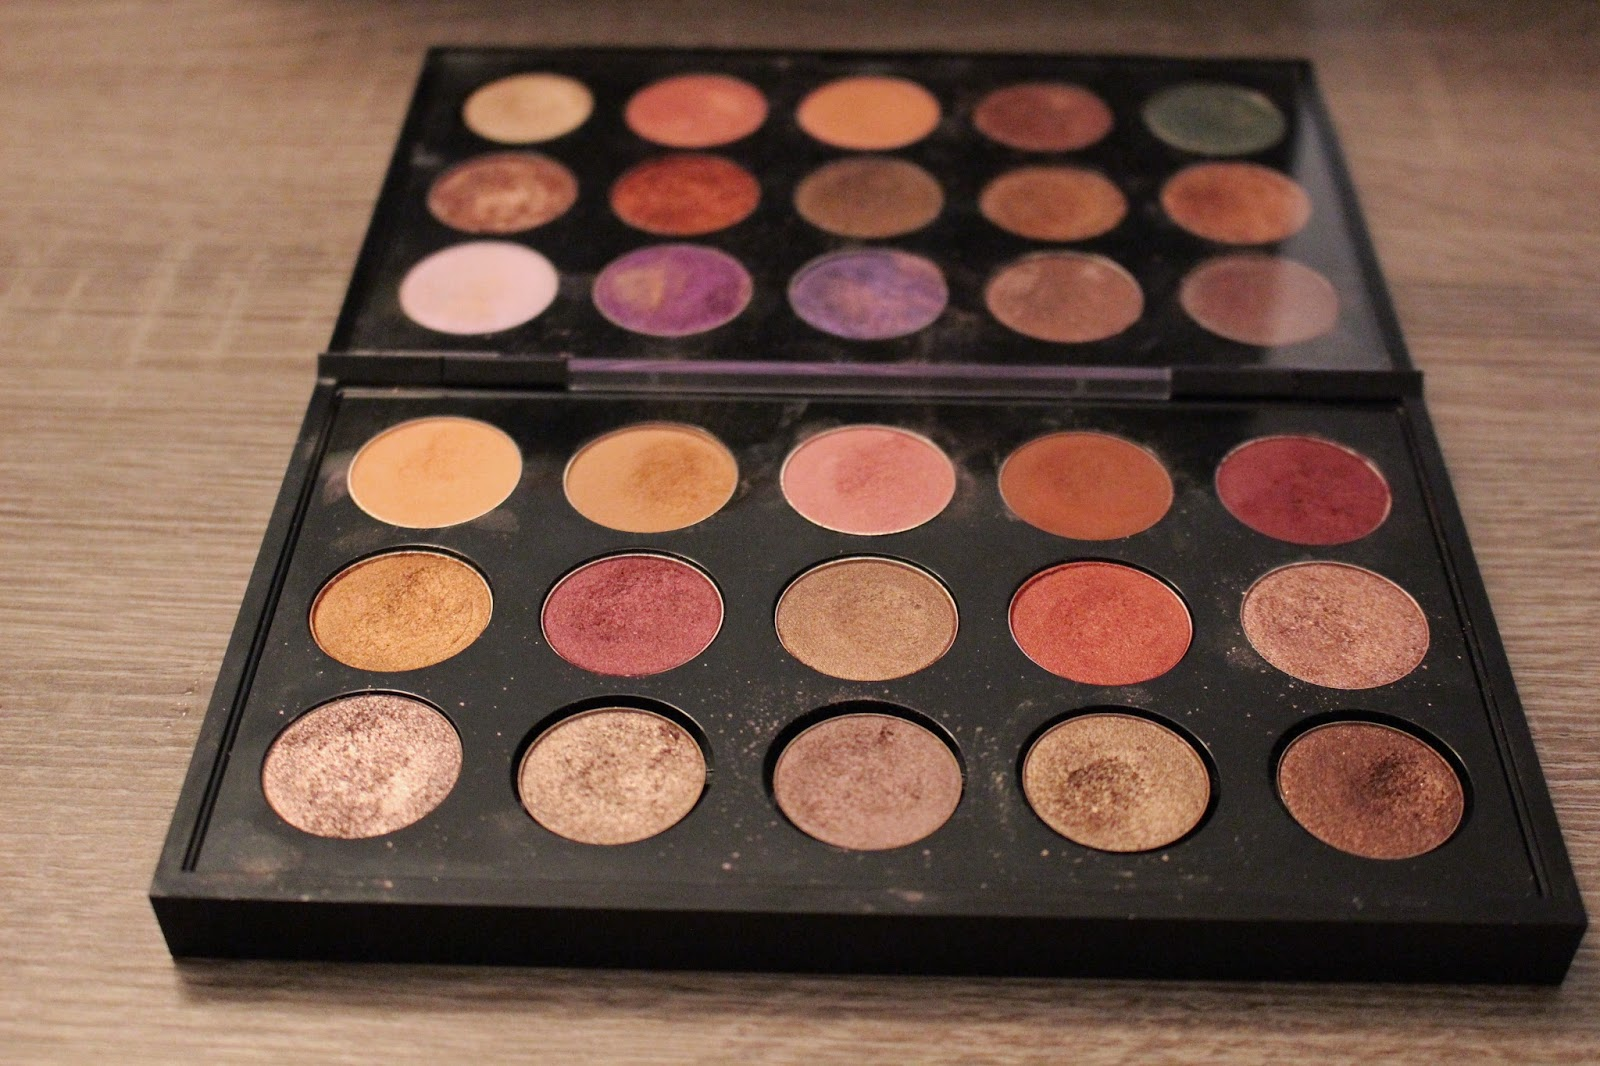 One Week, One Palette: Custom MAC, Makeup Geek, Make Up For Ever, and Morphe Palette